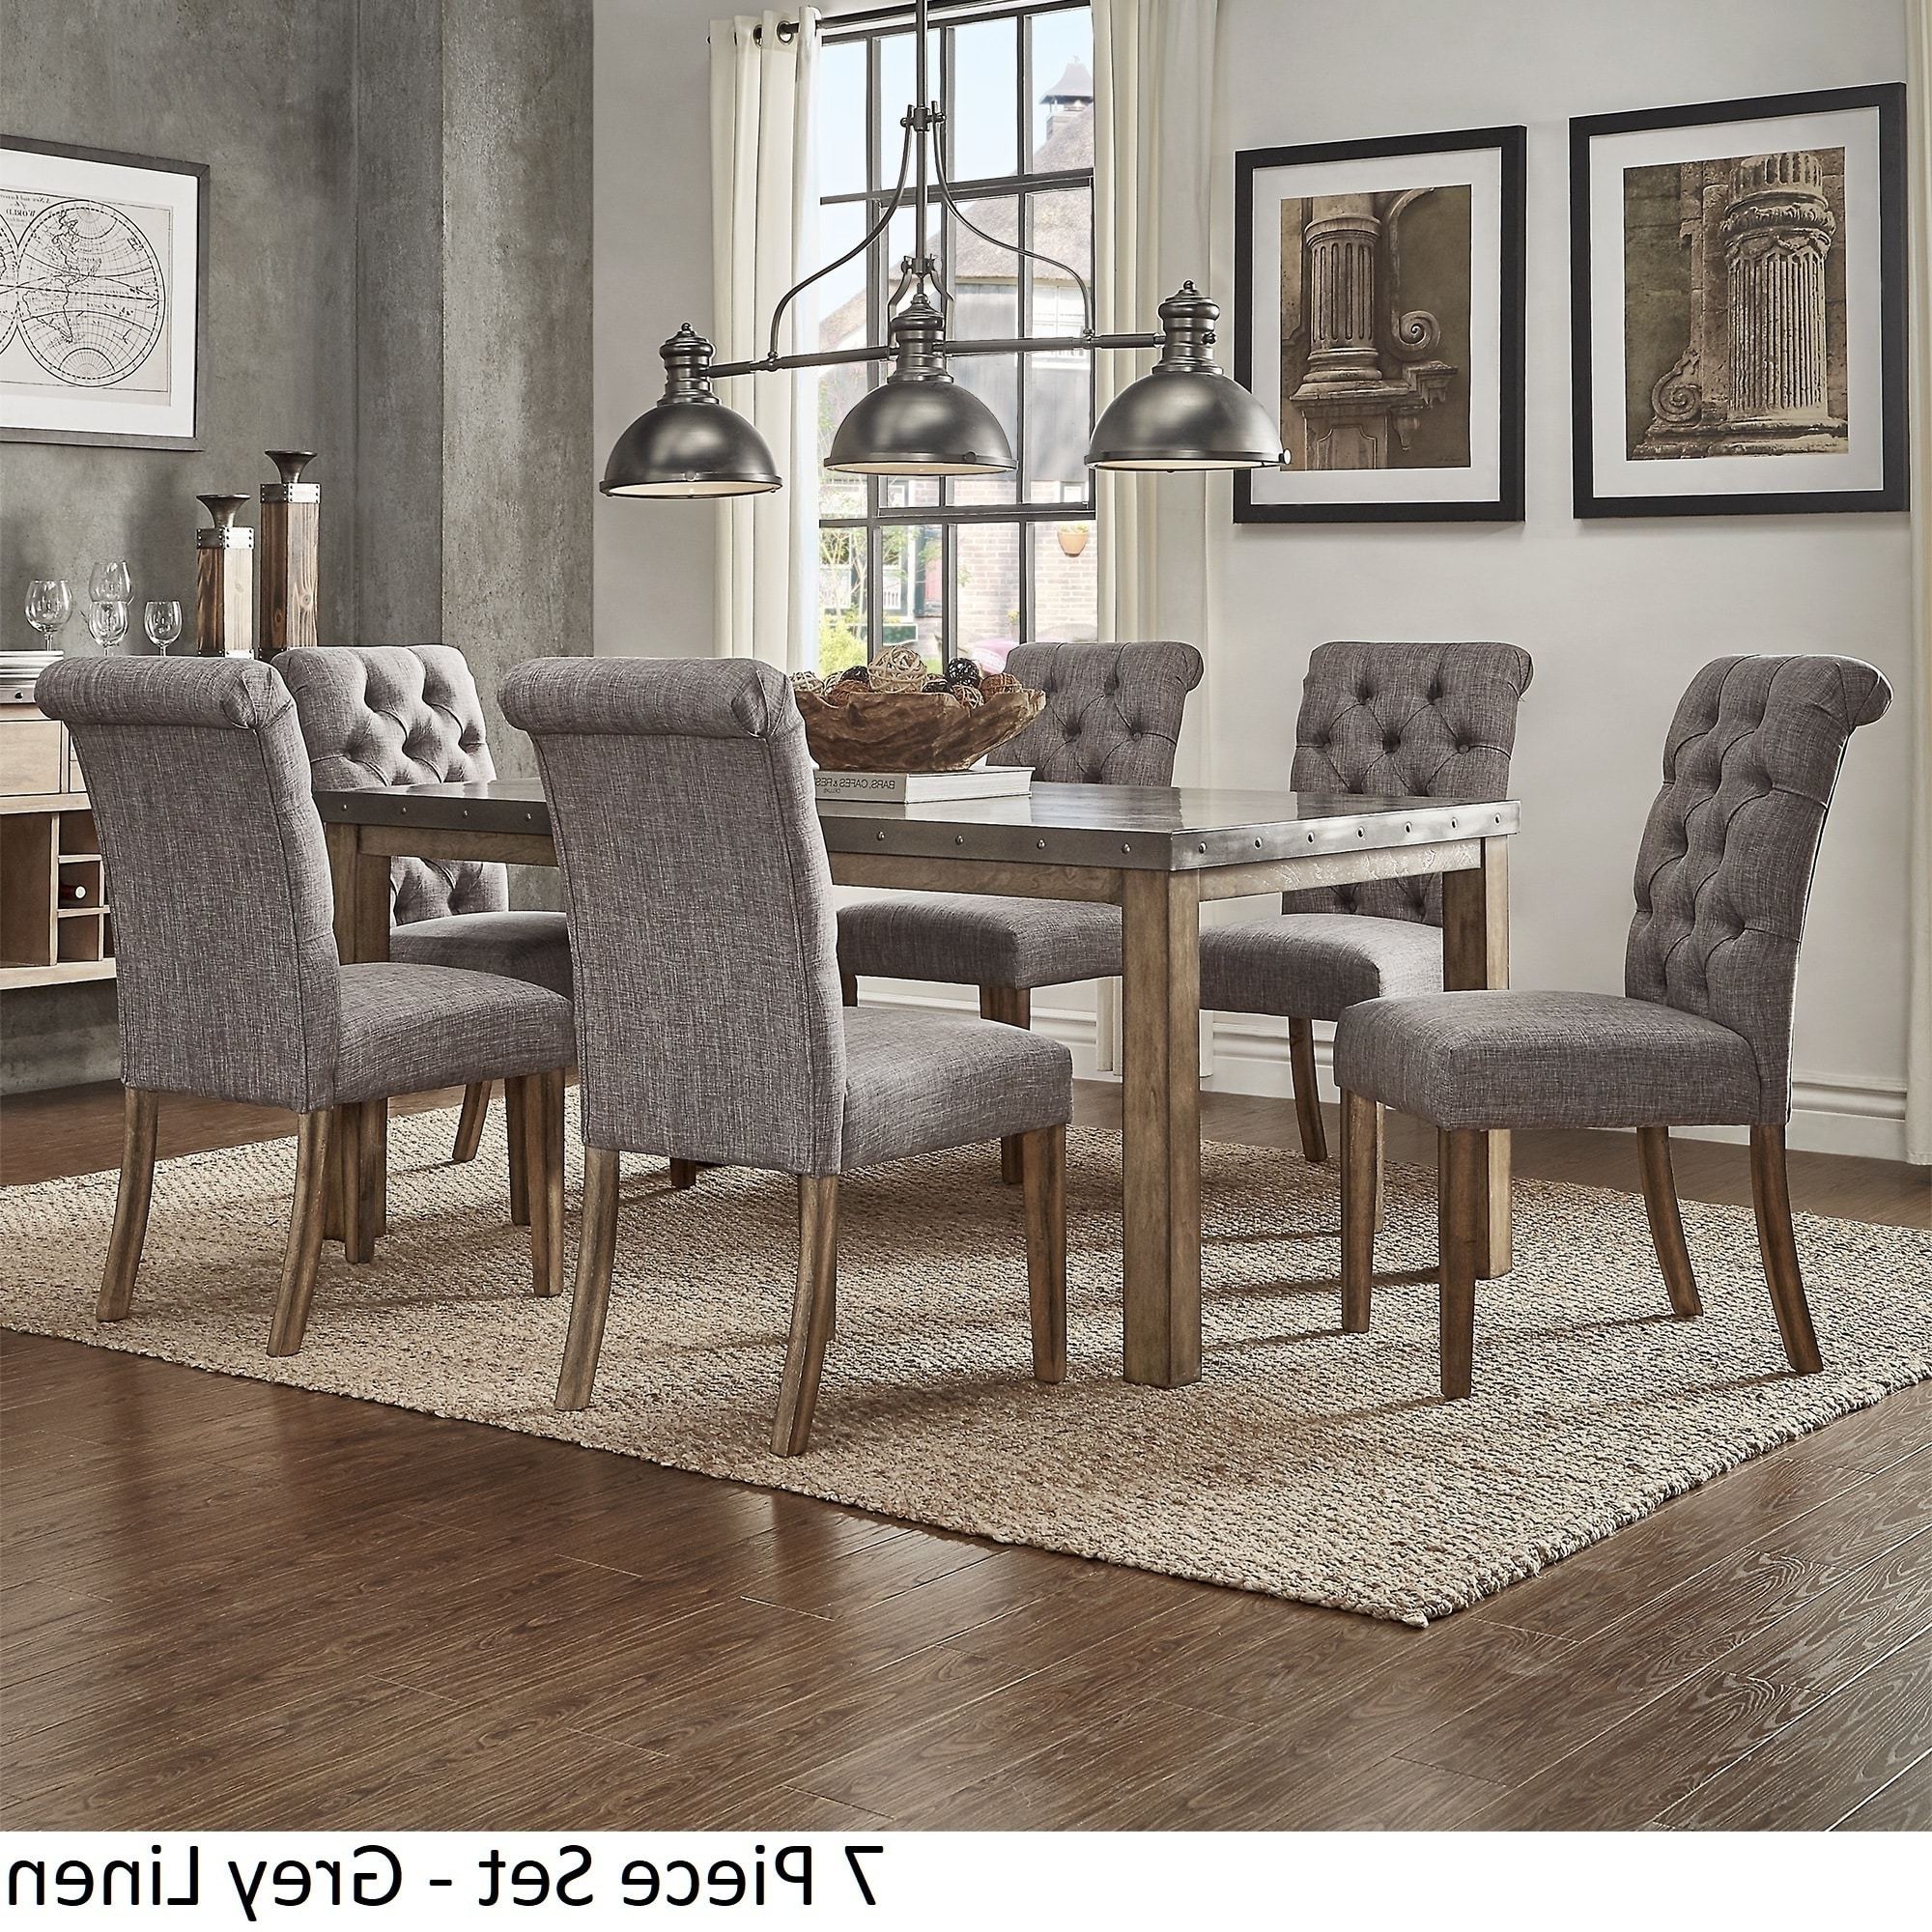 Best And Newest Cassidy Stainless Steel Top Rectangle Dining Table Setinspire Q With Regard To Candice Ii 7 Piece Extension Rectangular Dining Sets With Uph Side Chairs (View 18 of 25)